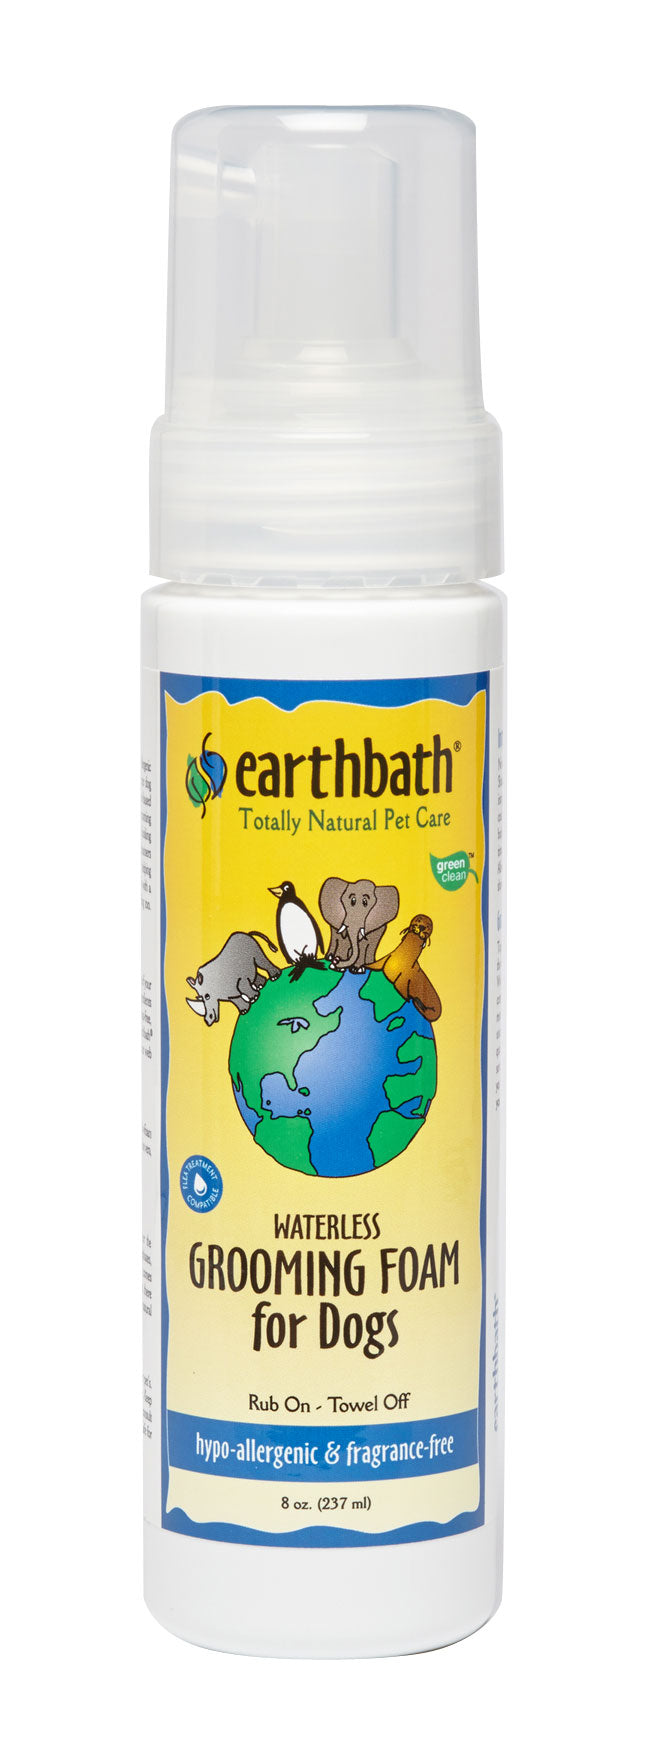 Earthbath - Grooming Foam for Dogs